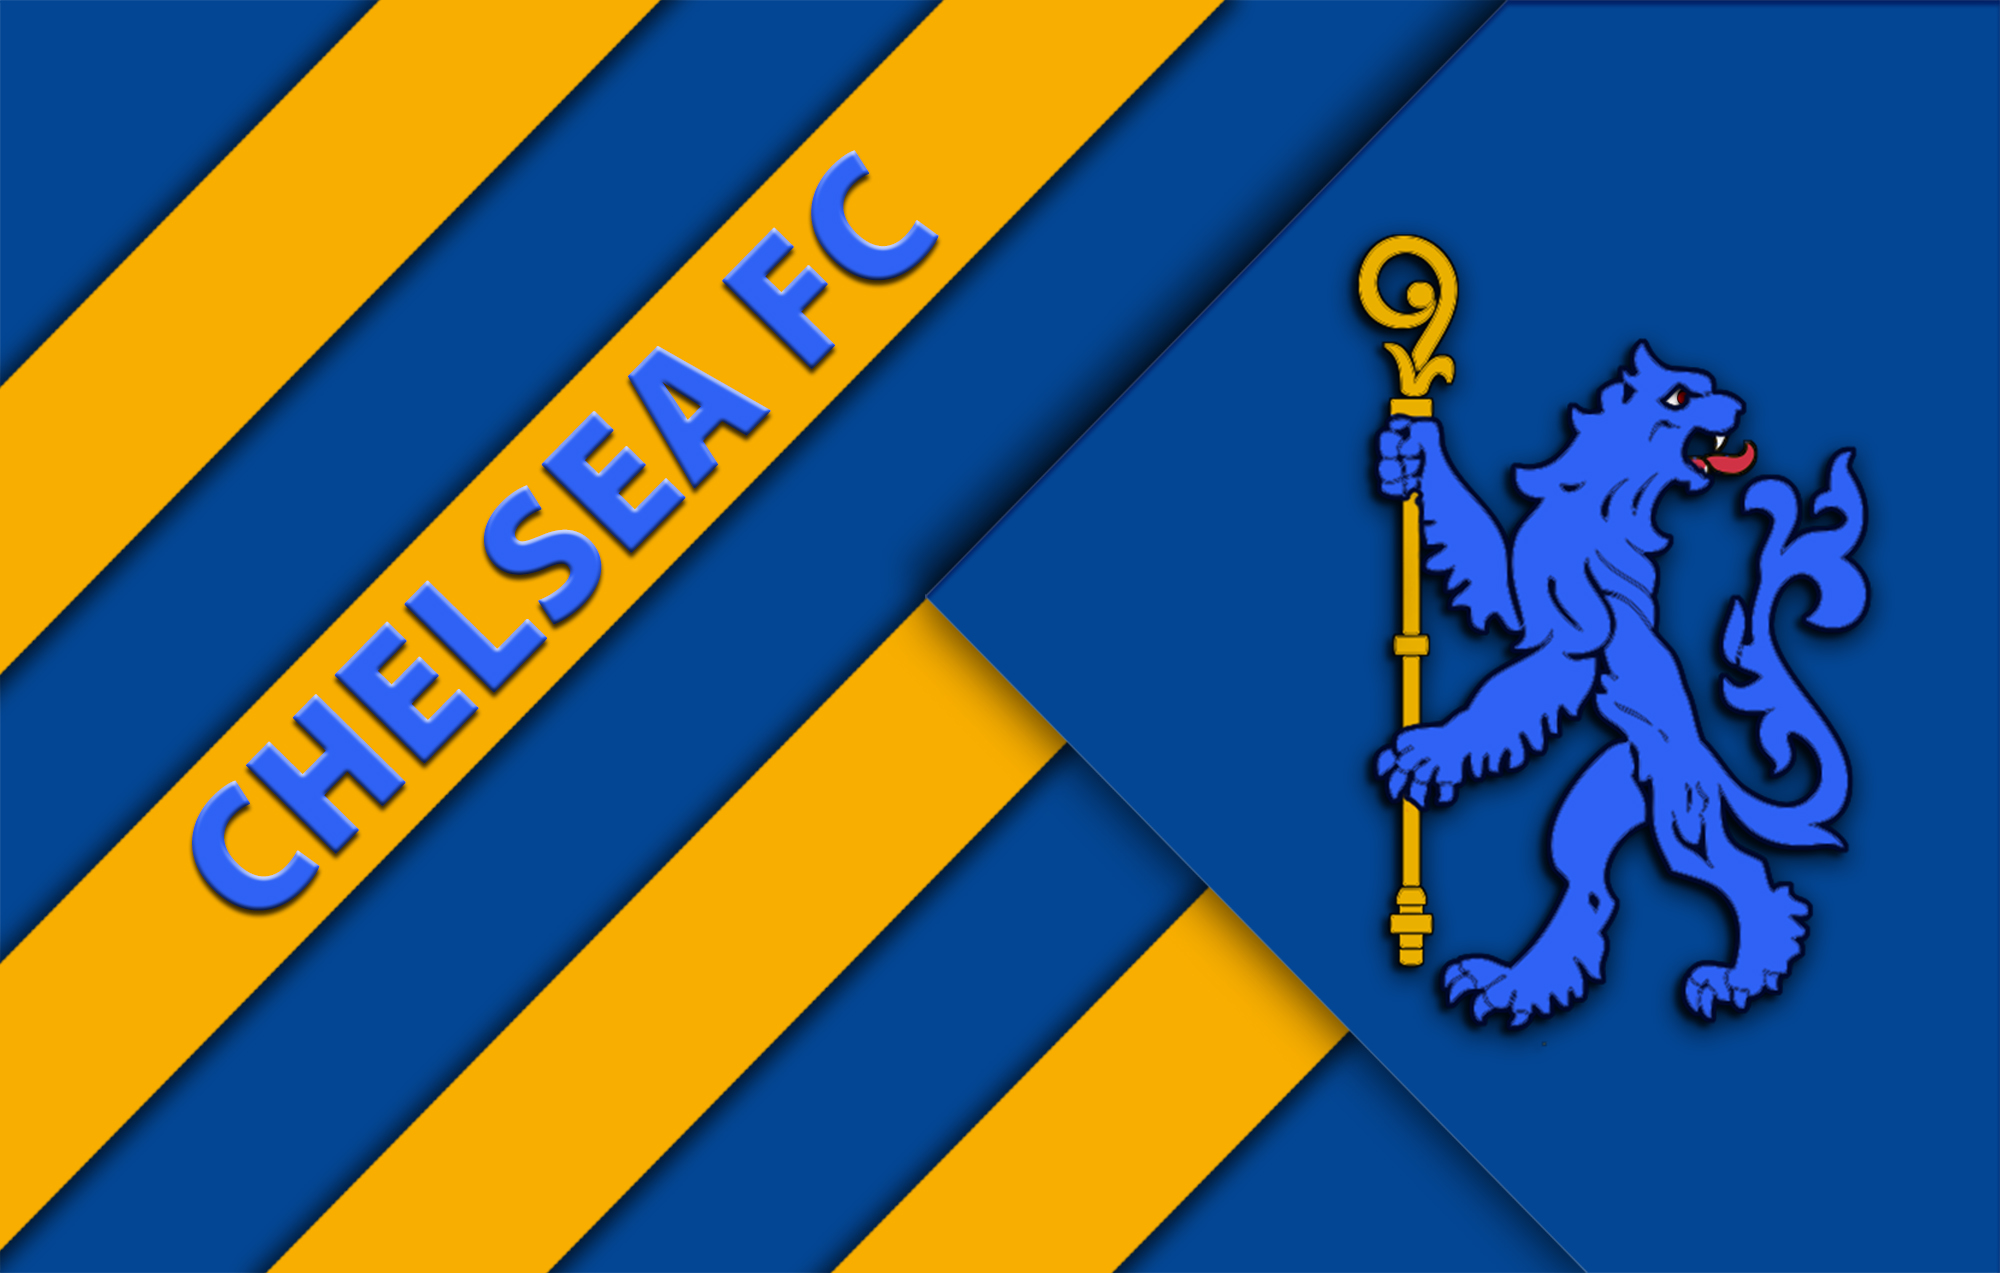 Imunionjack Images Chelsea Fc Wp Yellow Blue Lion Hd Wallpaper And